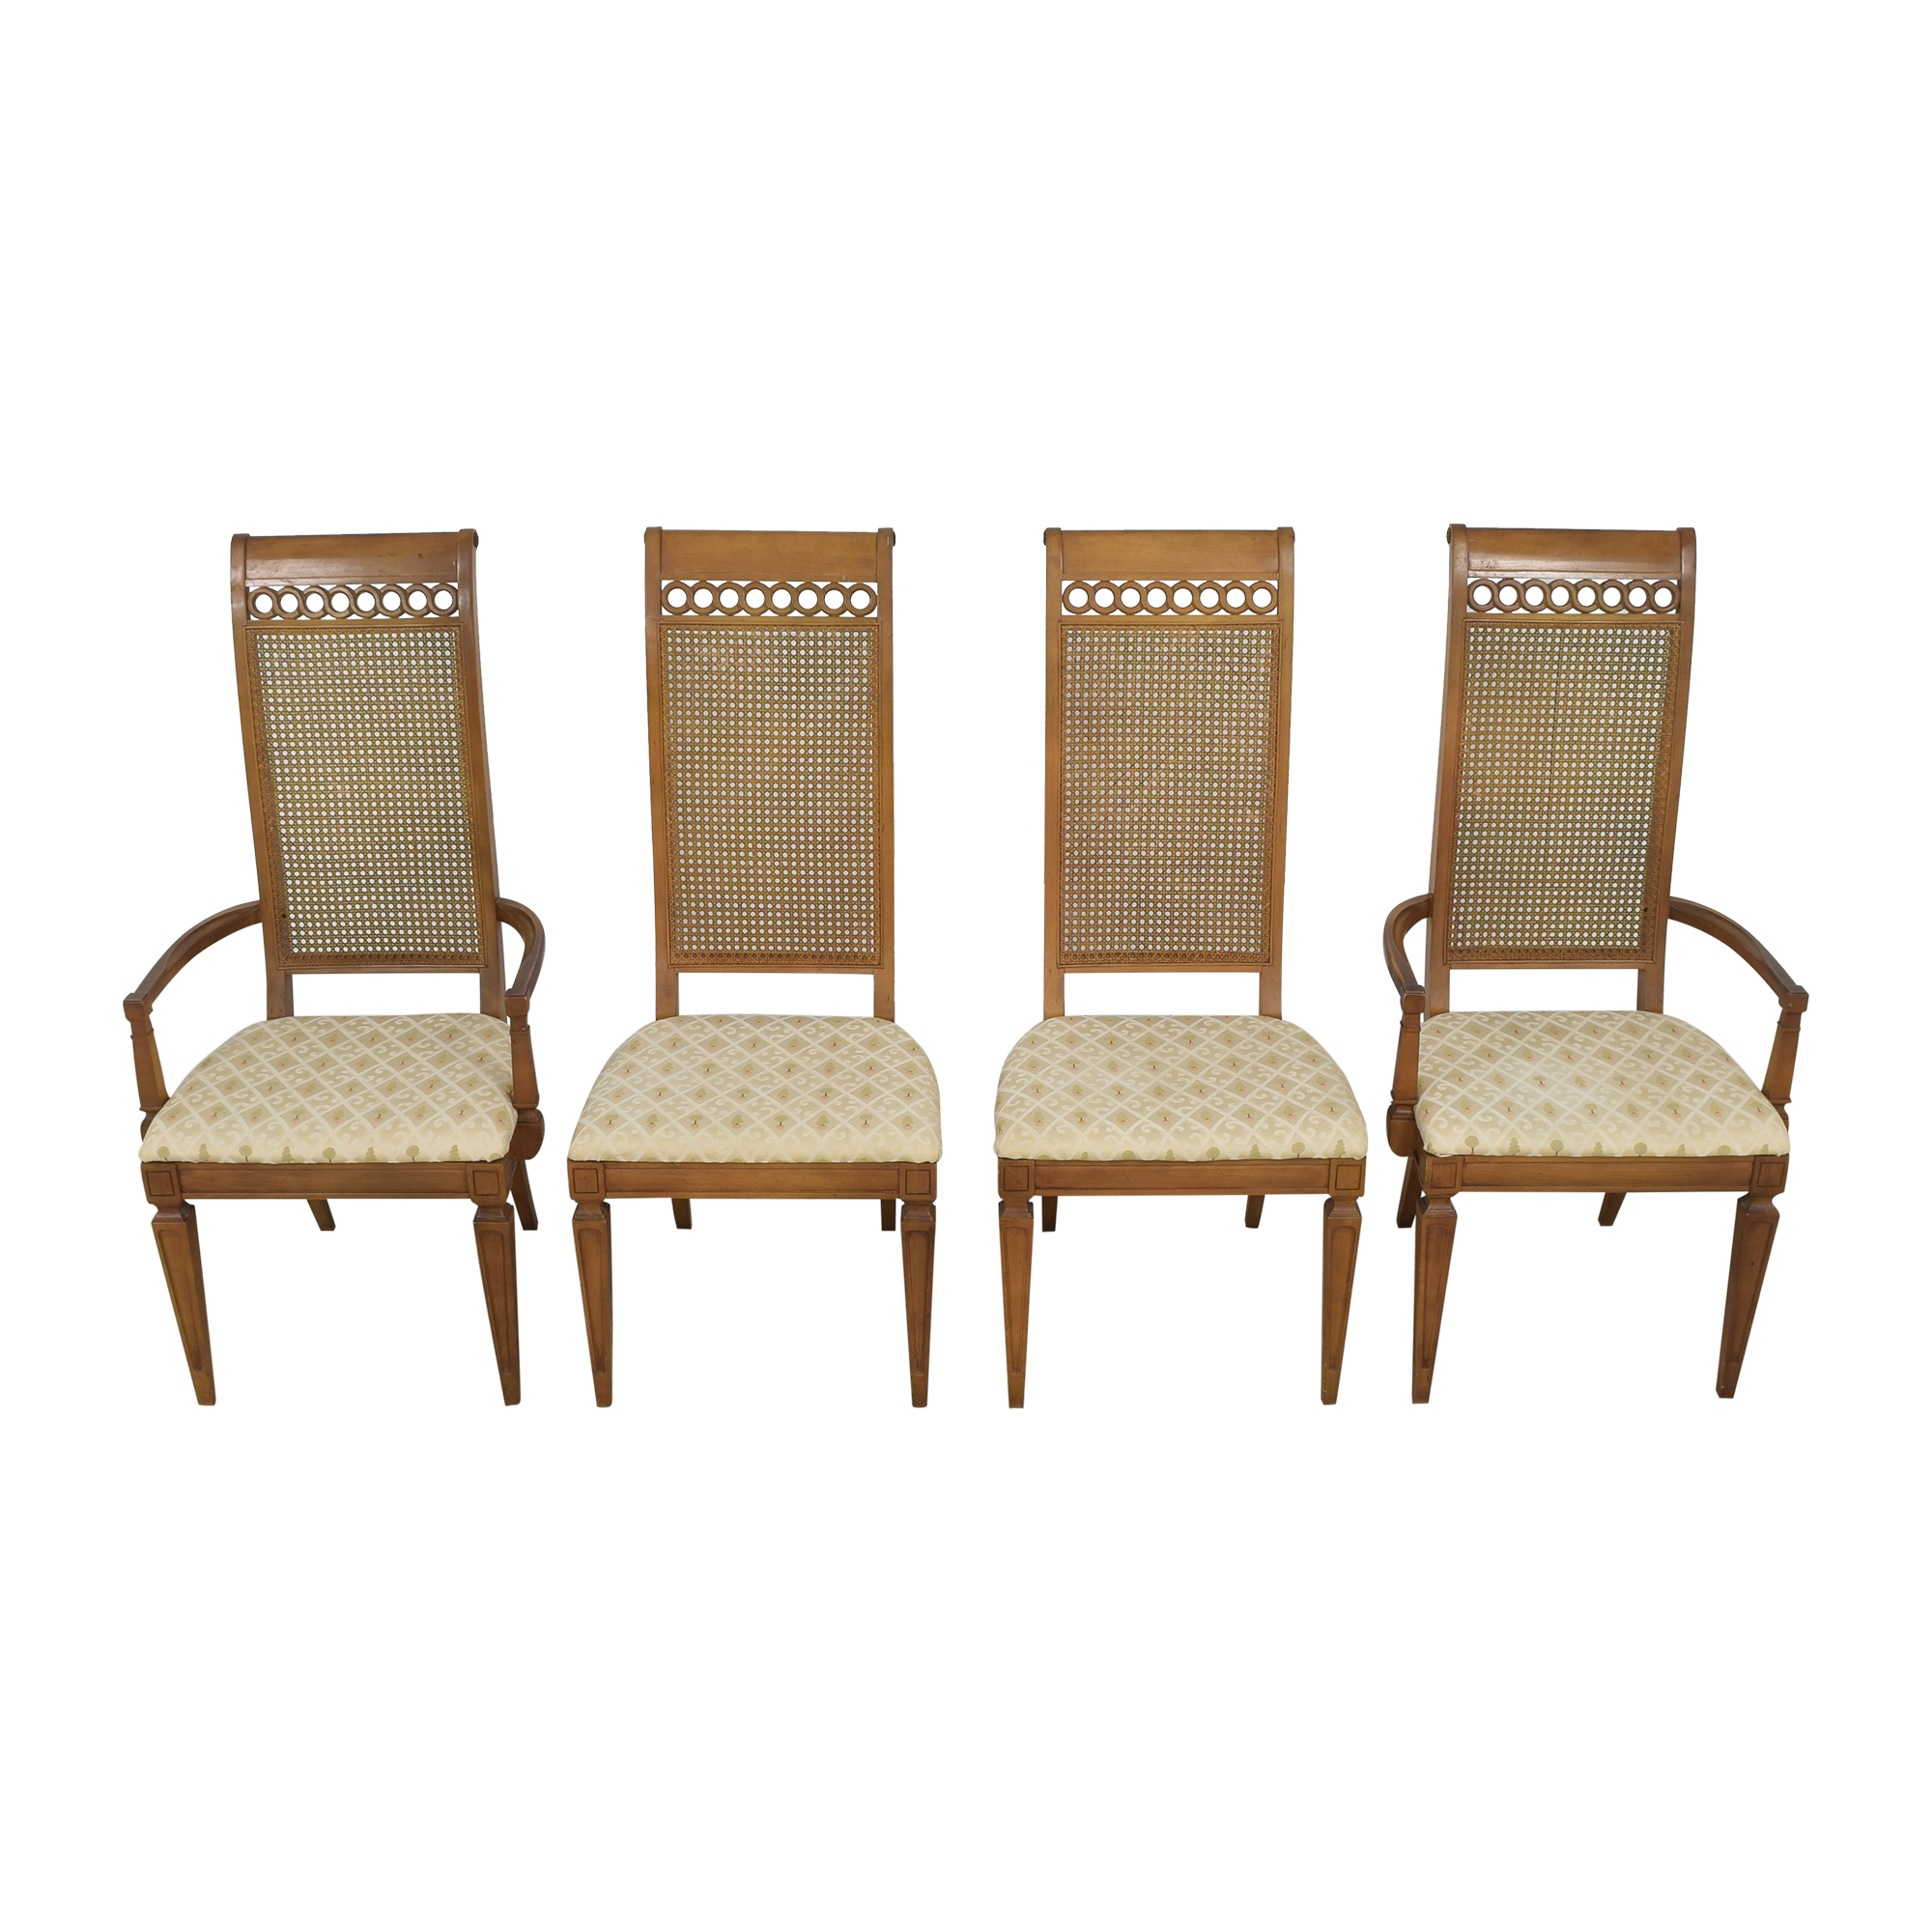 shop Thomasville Bellini Collection Dining Chairs Thomasville Dining Chairs